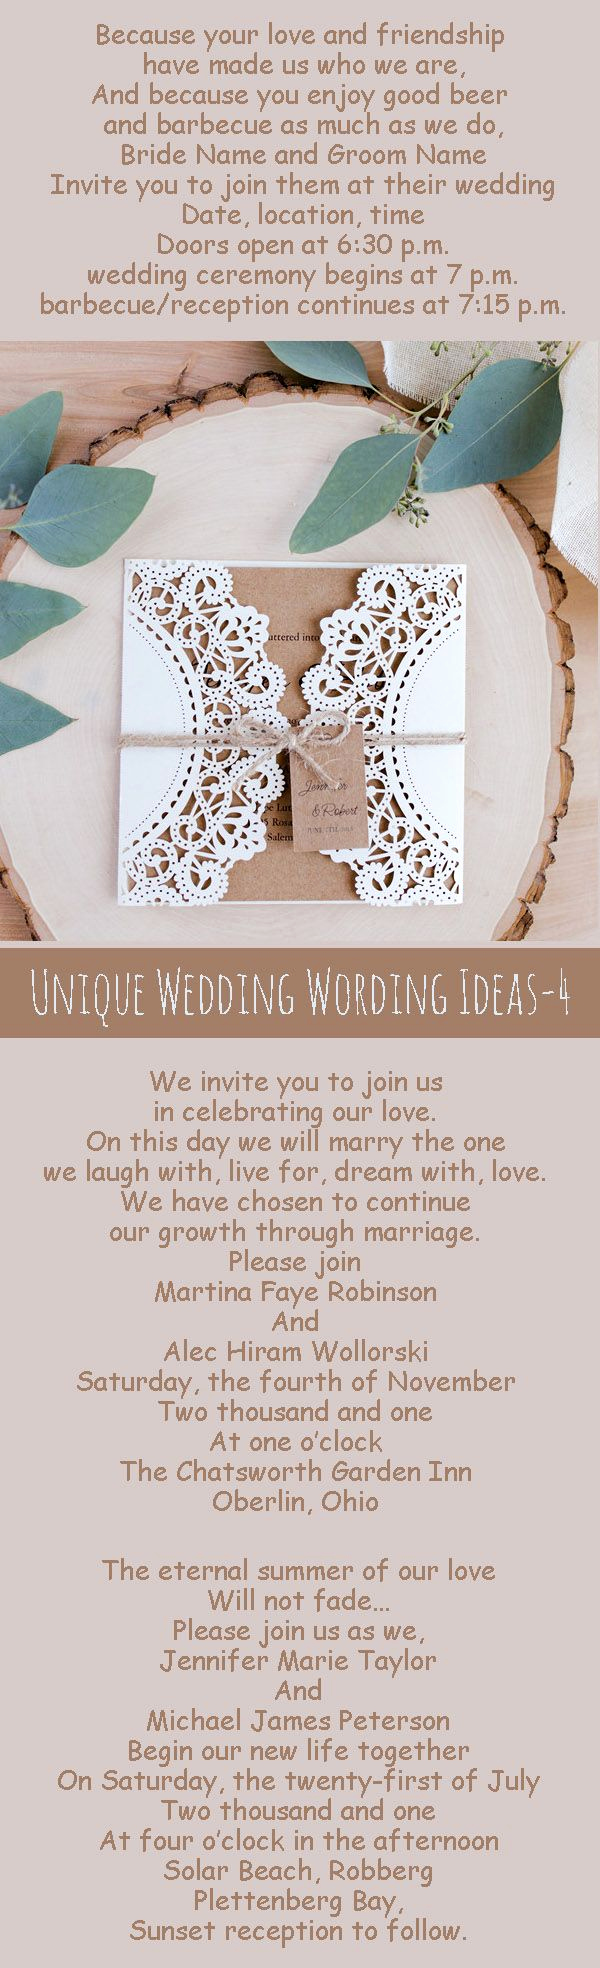 Unique Wedding Invitation Wording Inspirational Best 25 Unique Wedding Invitation Wording Ideas On